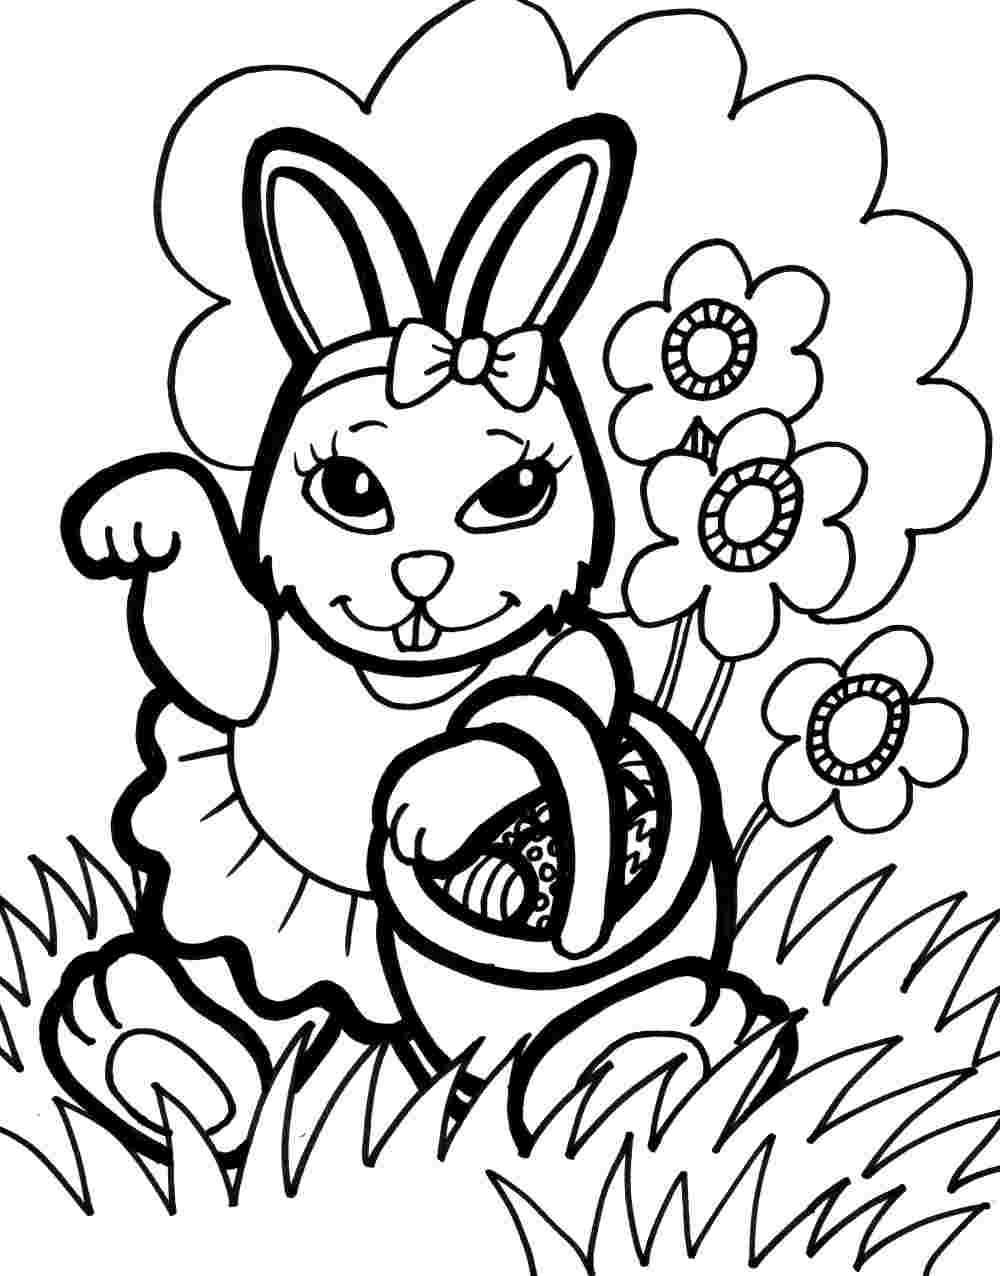 Coloring Festival Bunny Rabbit Coloring Pages To Print More Than